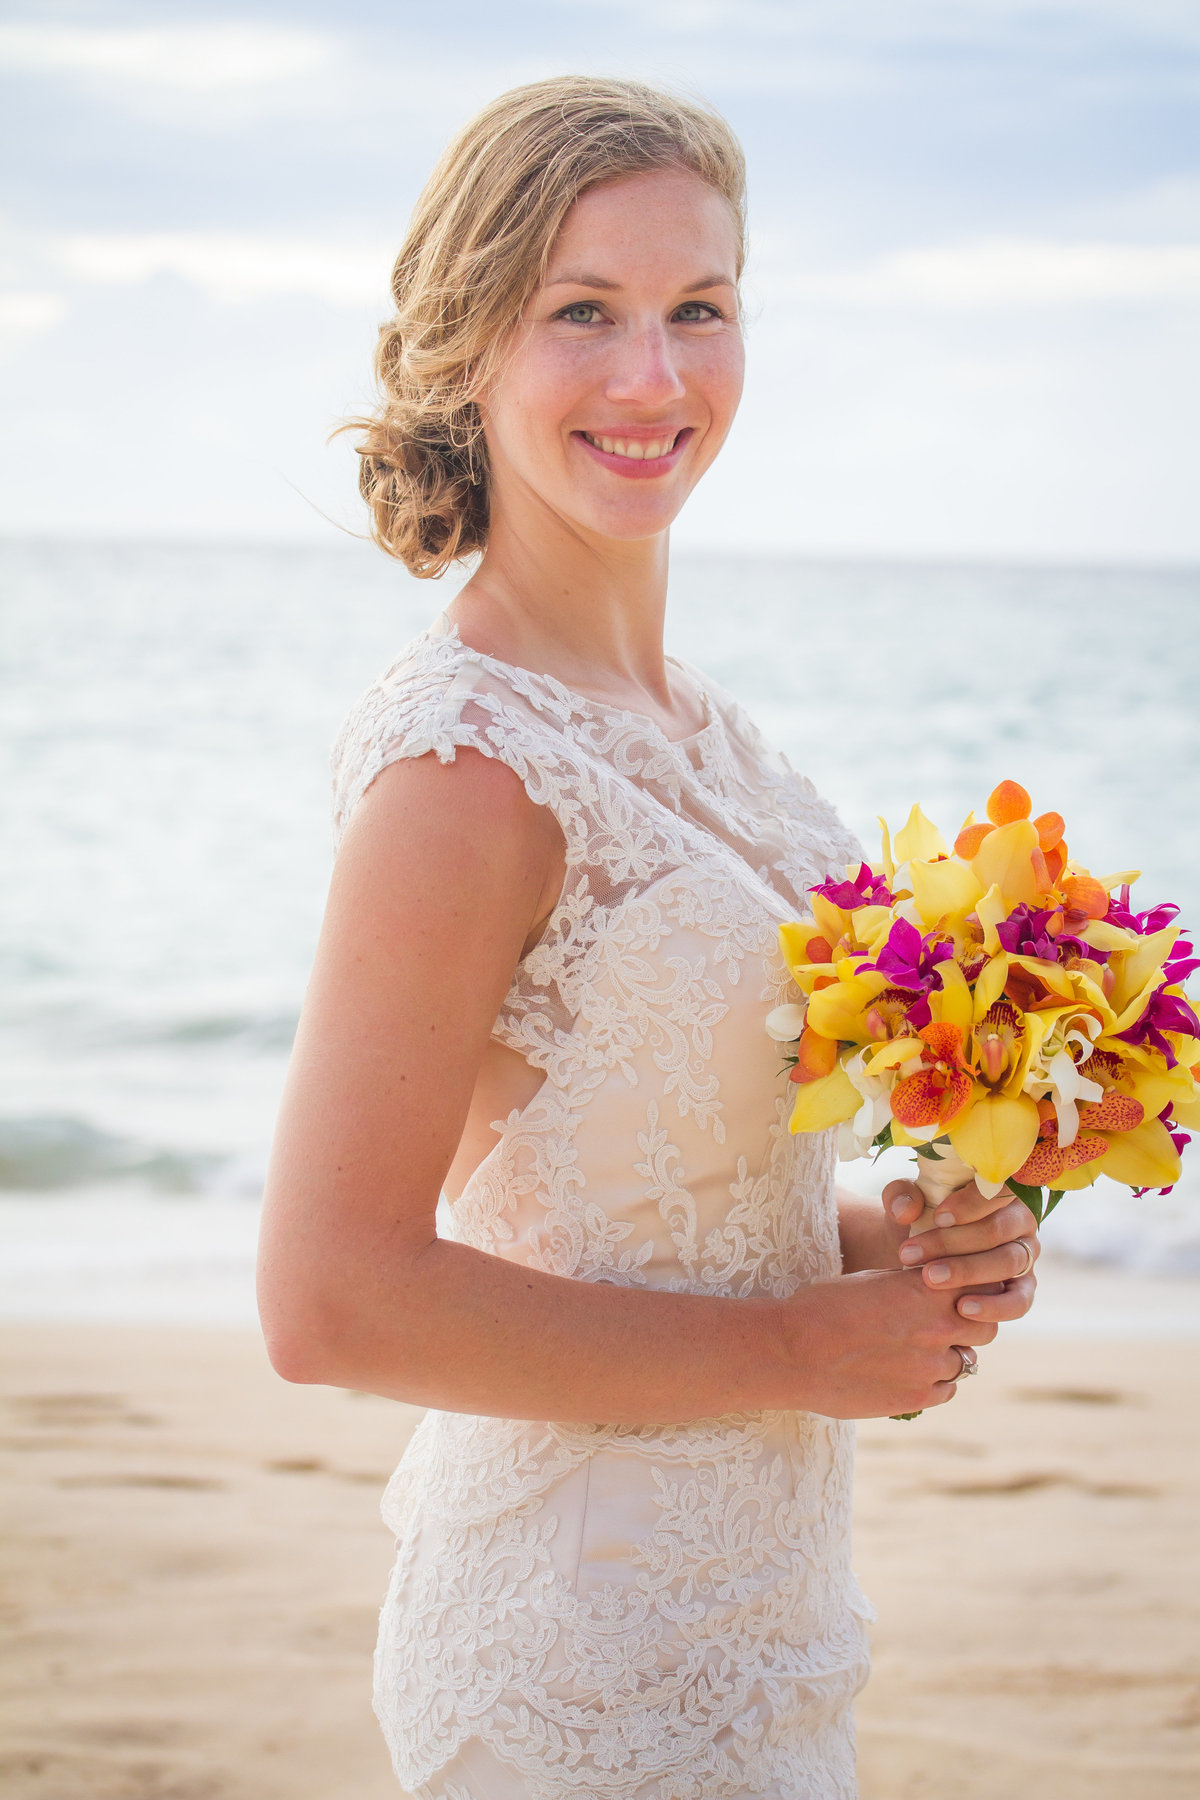 Lovely bride with lace dress and tropical bouquet on Kauai beach.